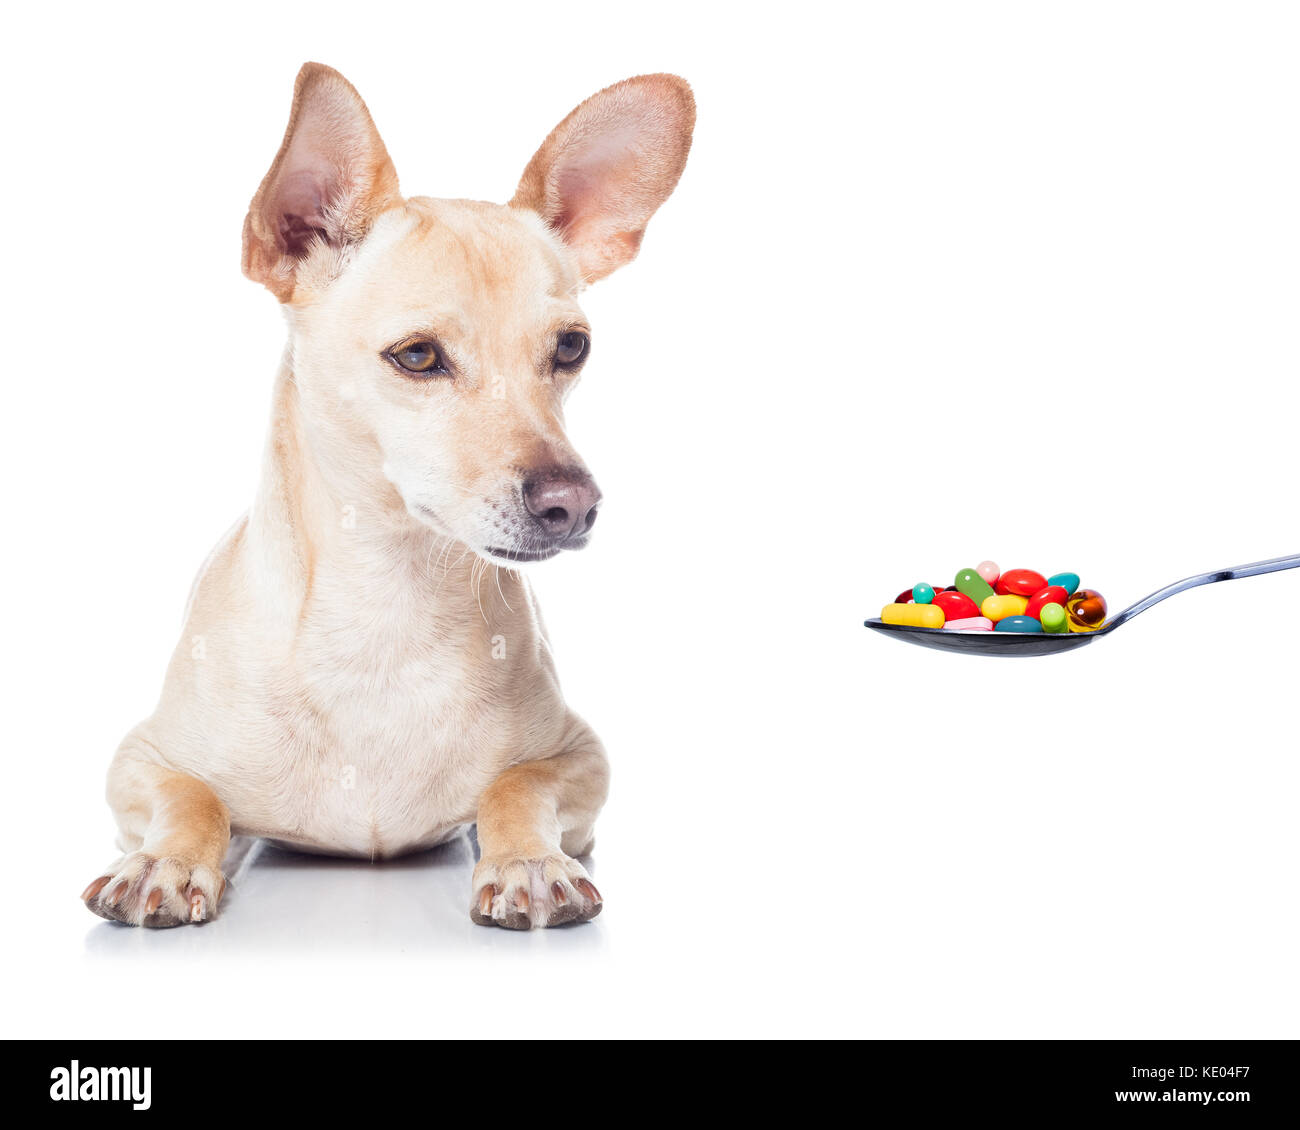 Spoon Suffer Stock Photos & Spoon Suffer Stock Images - Alamy